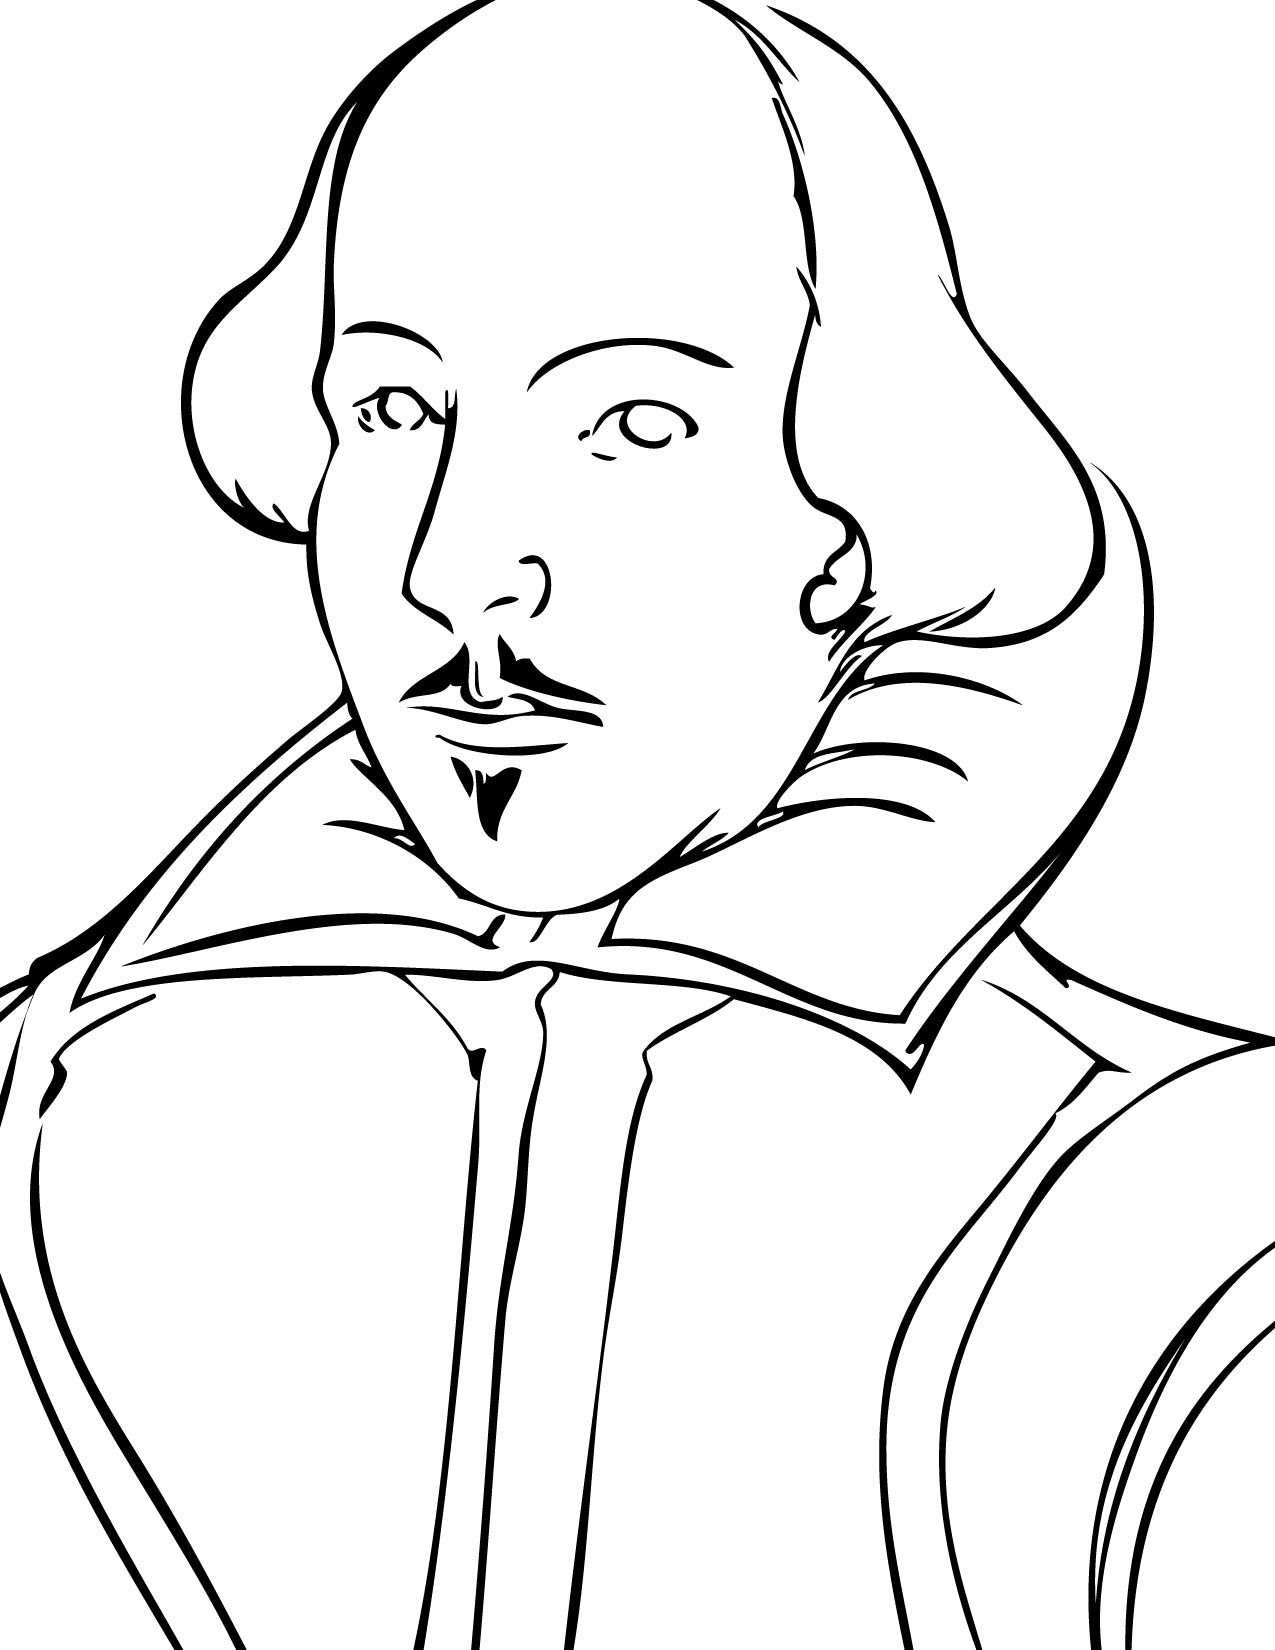 Good coloring page of #Shakespeare's face. If you have to